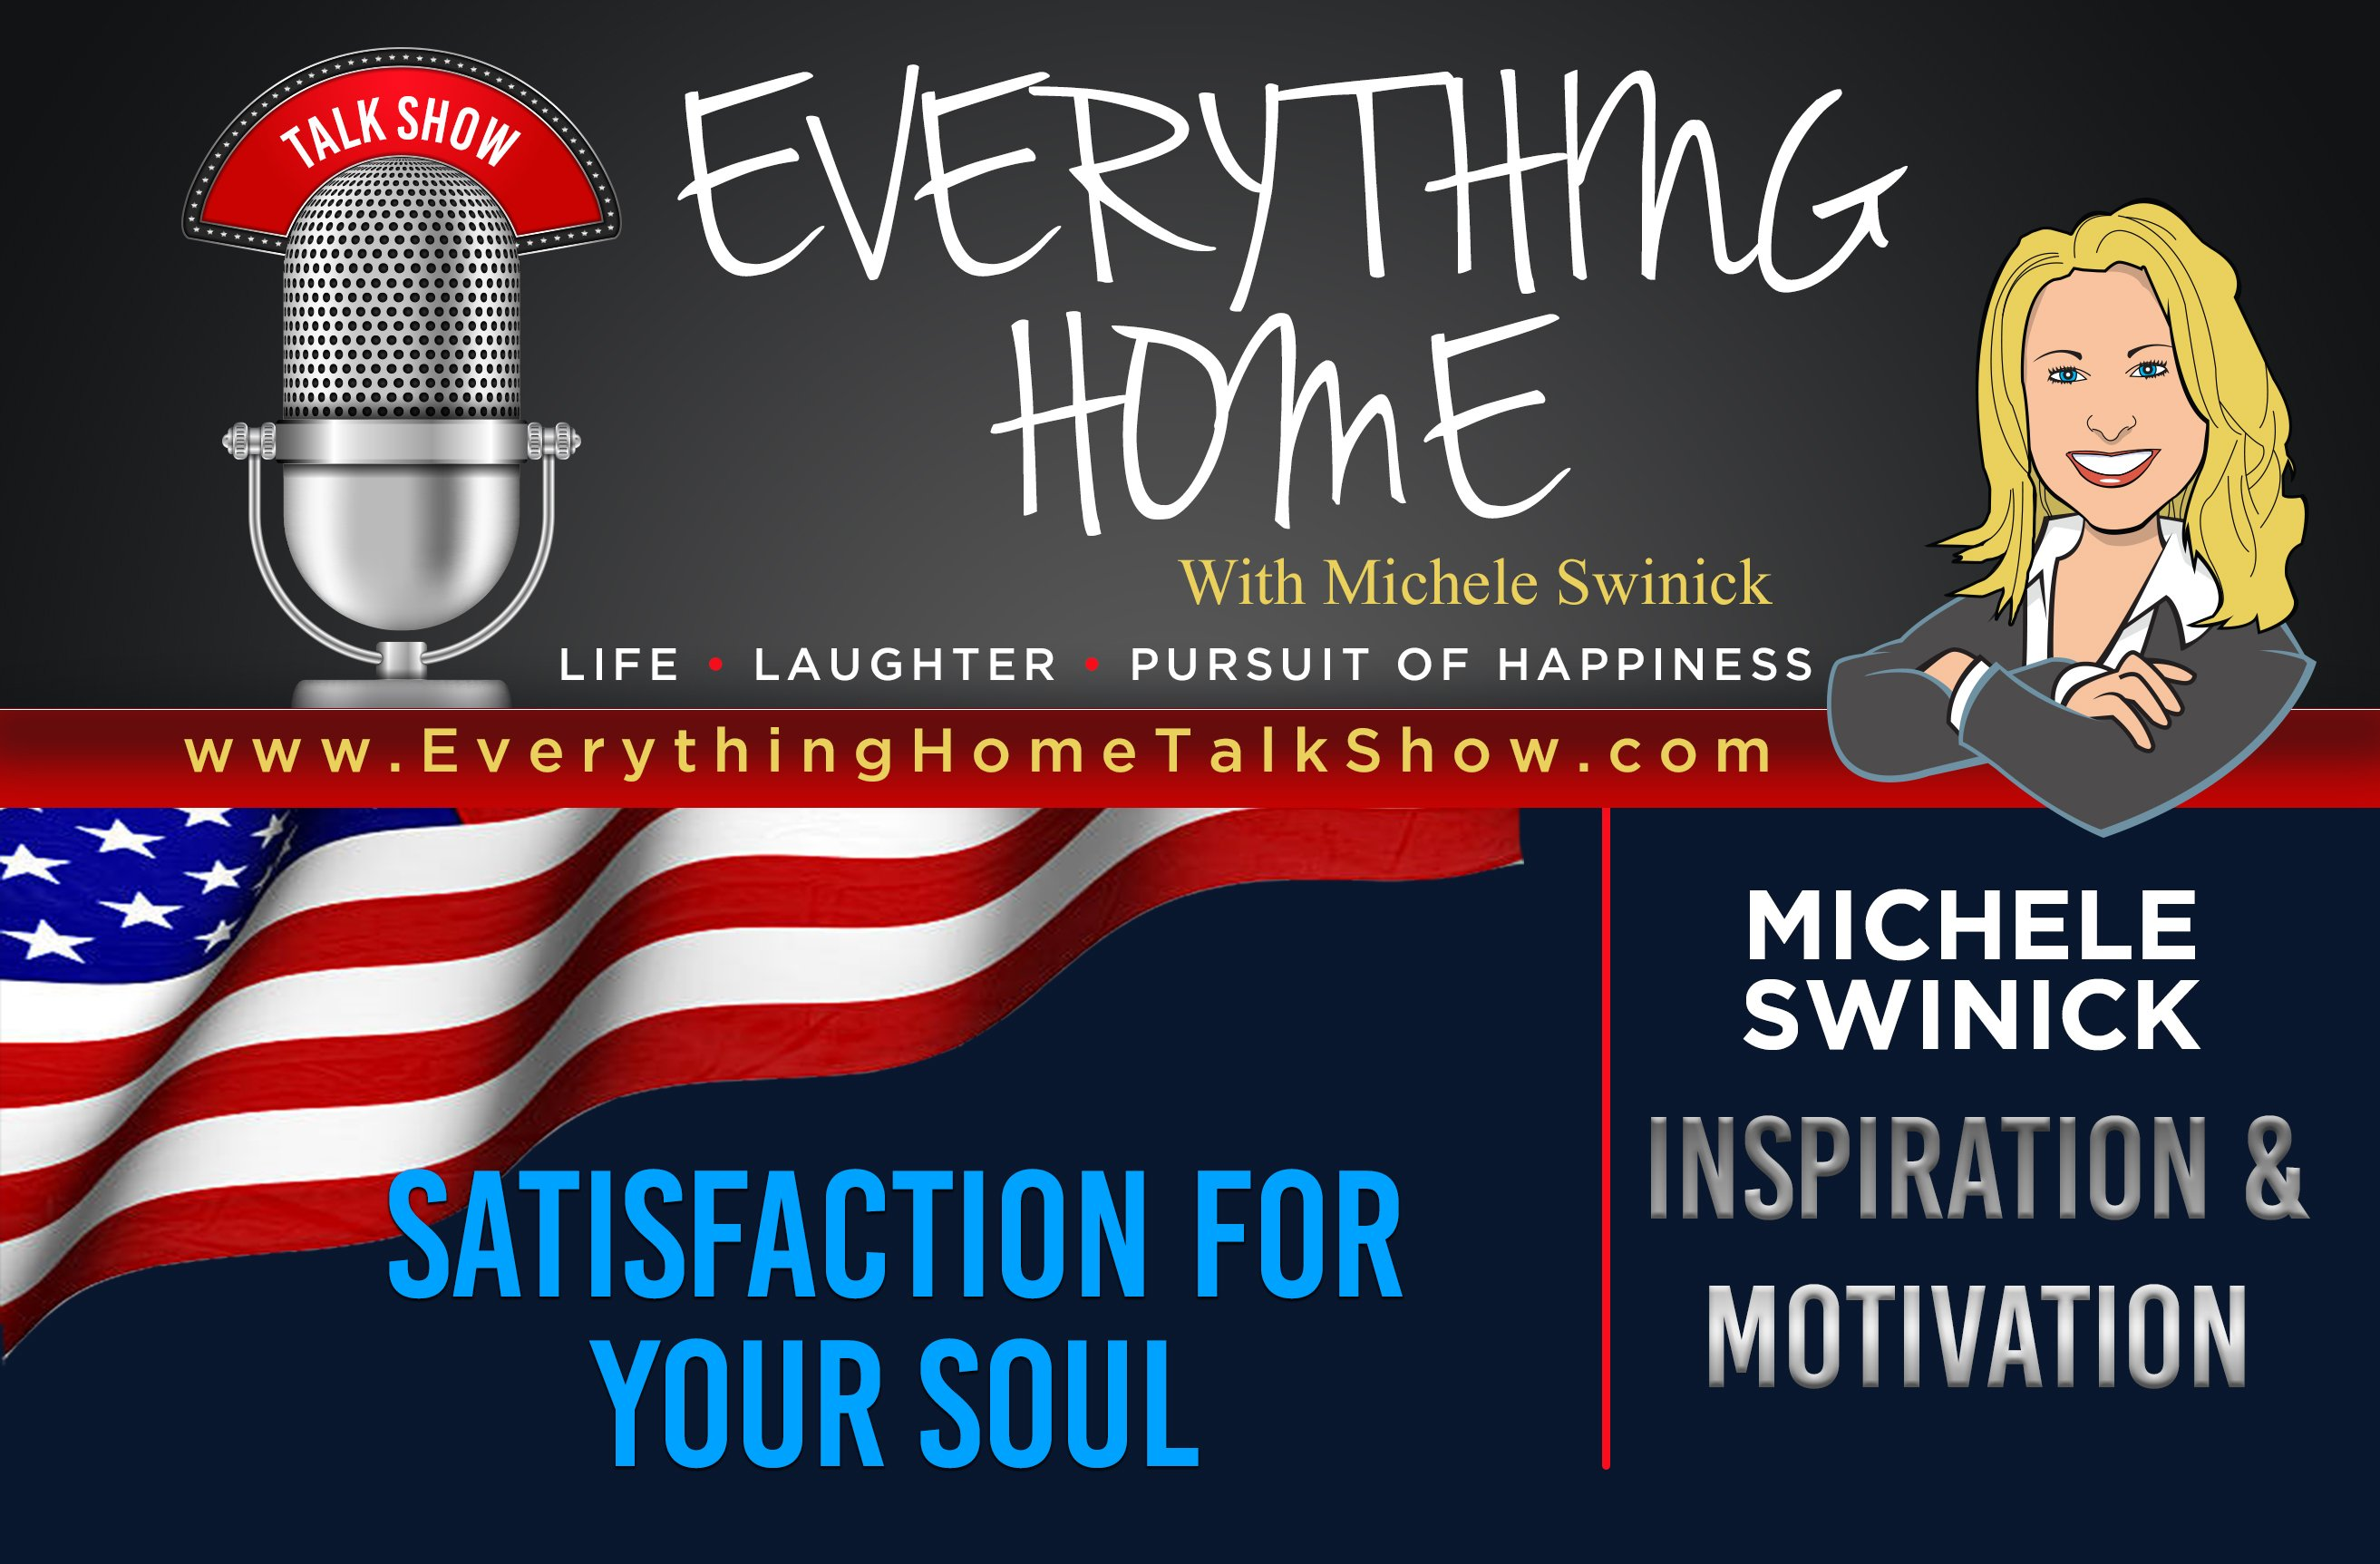 Everything Home Talk Radio Show & Podcast - Satisfaction For Your Soul - Michele Swinick - Special Segments - BANNER